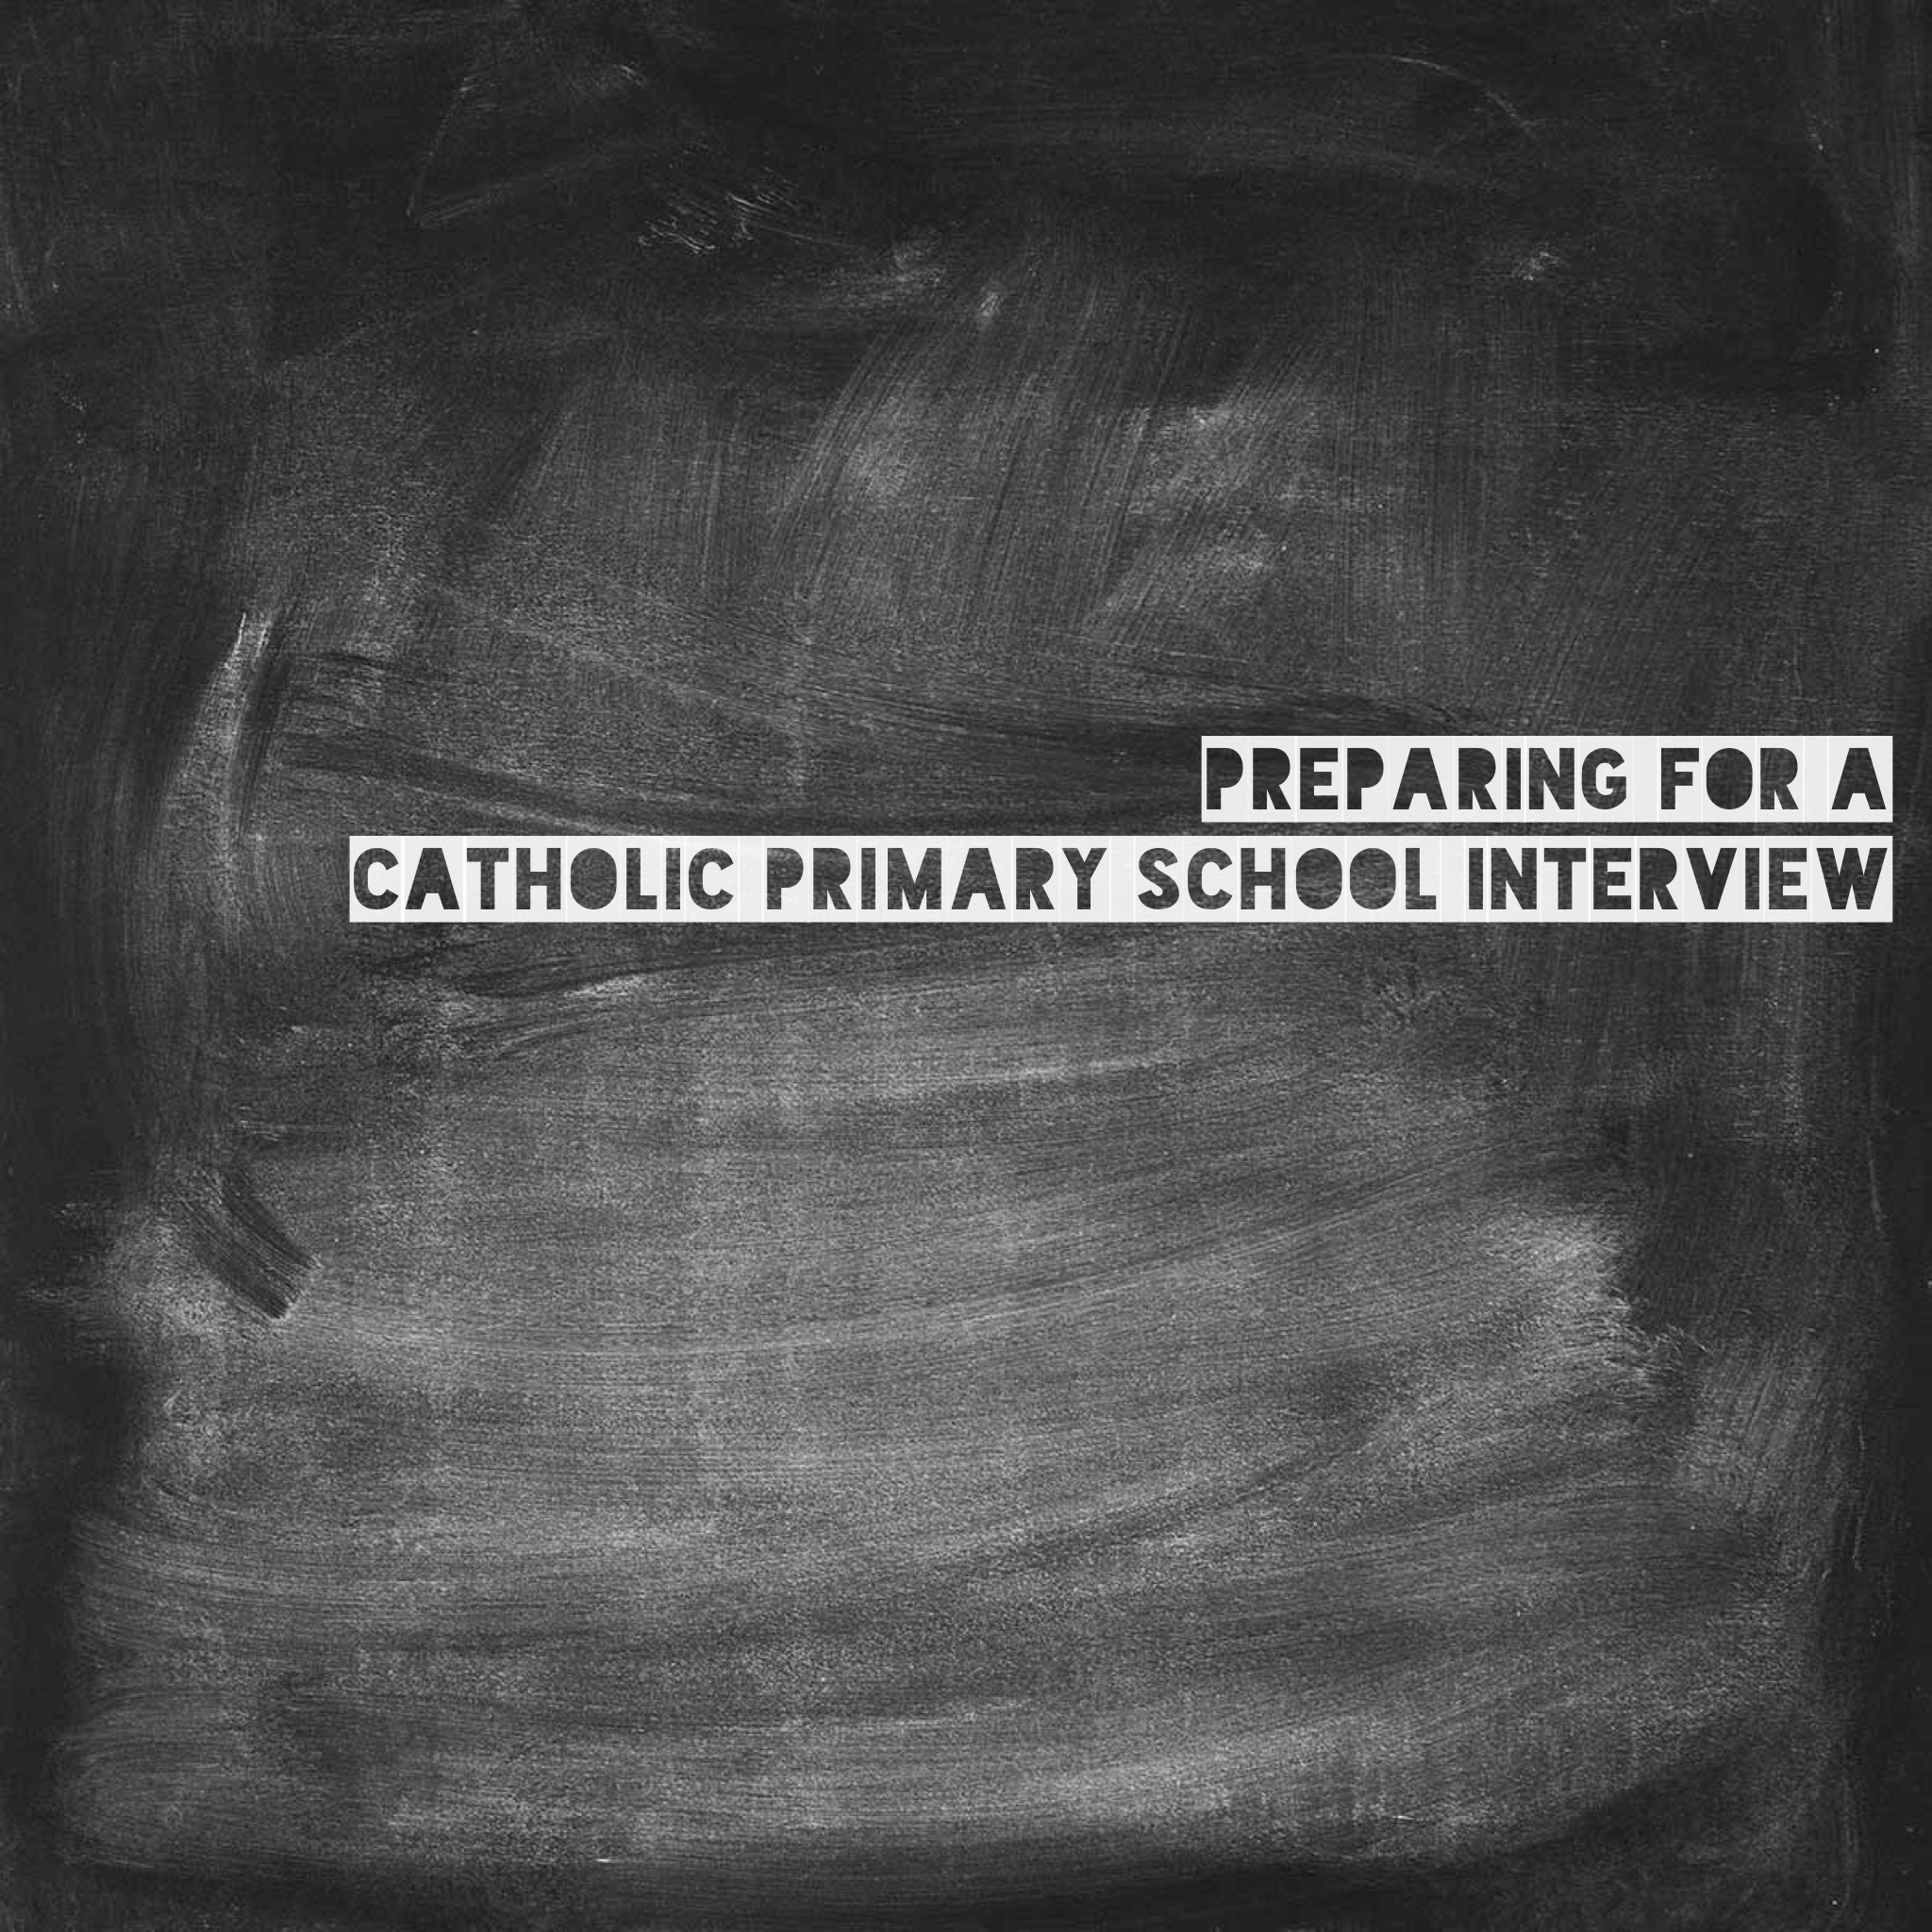 Catholic Primary School interview - Life on Wallace